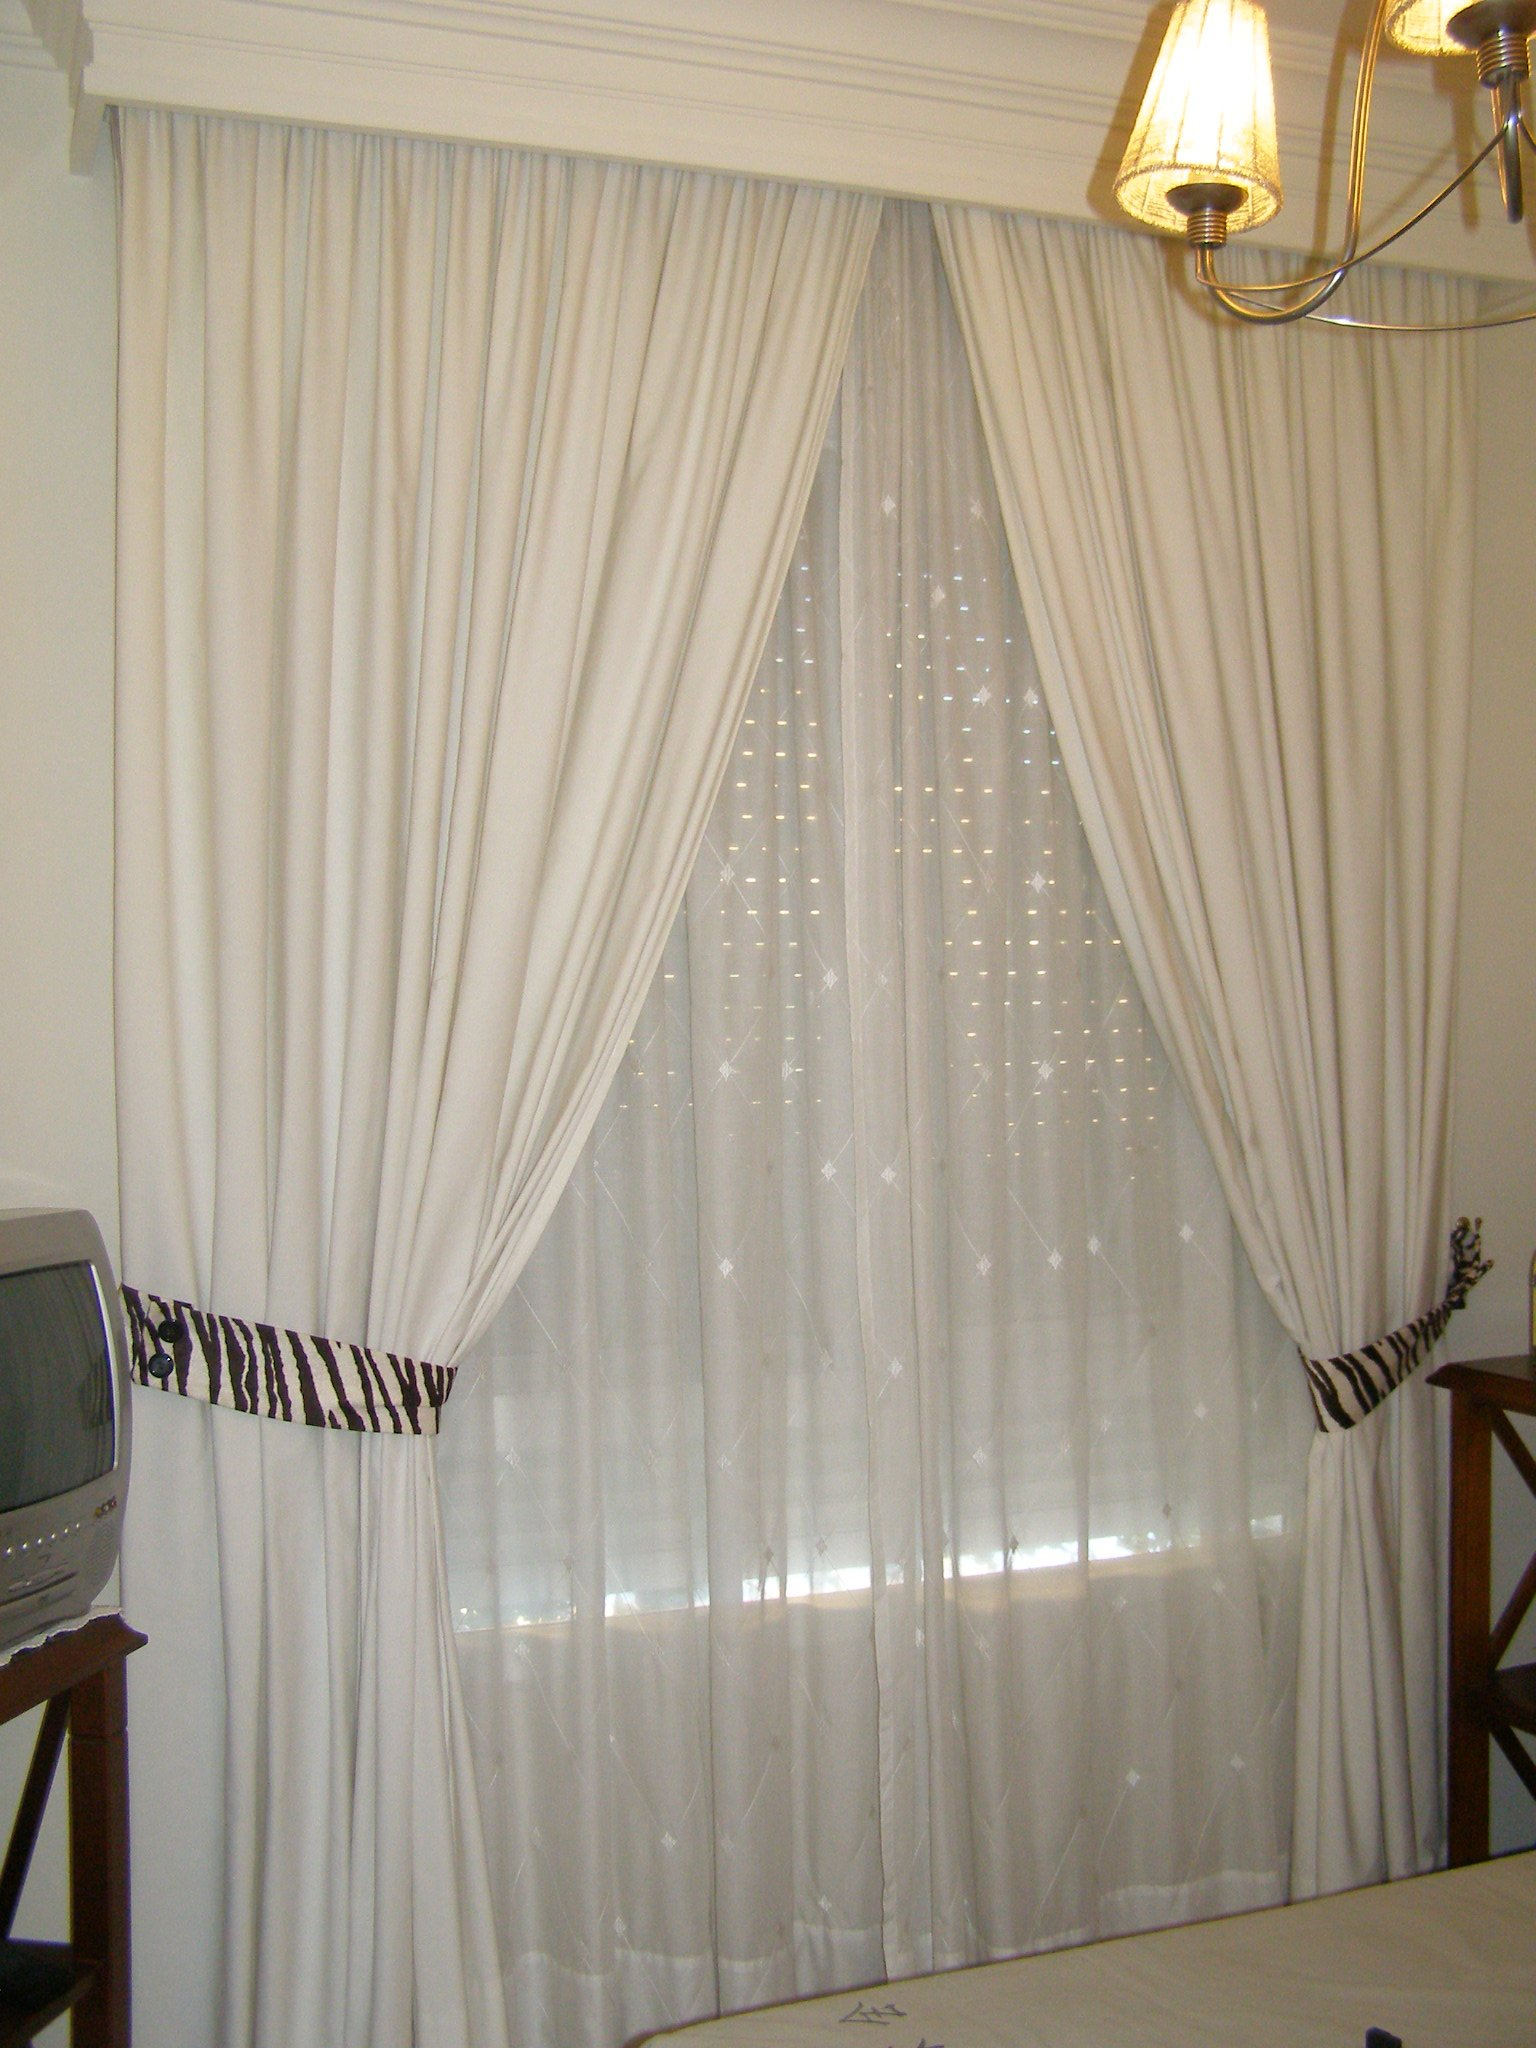 Cortinas ebanotextil - Cortinas y decoracion ...